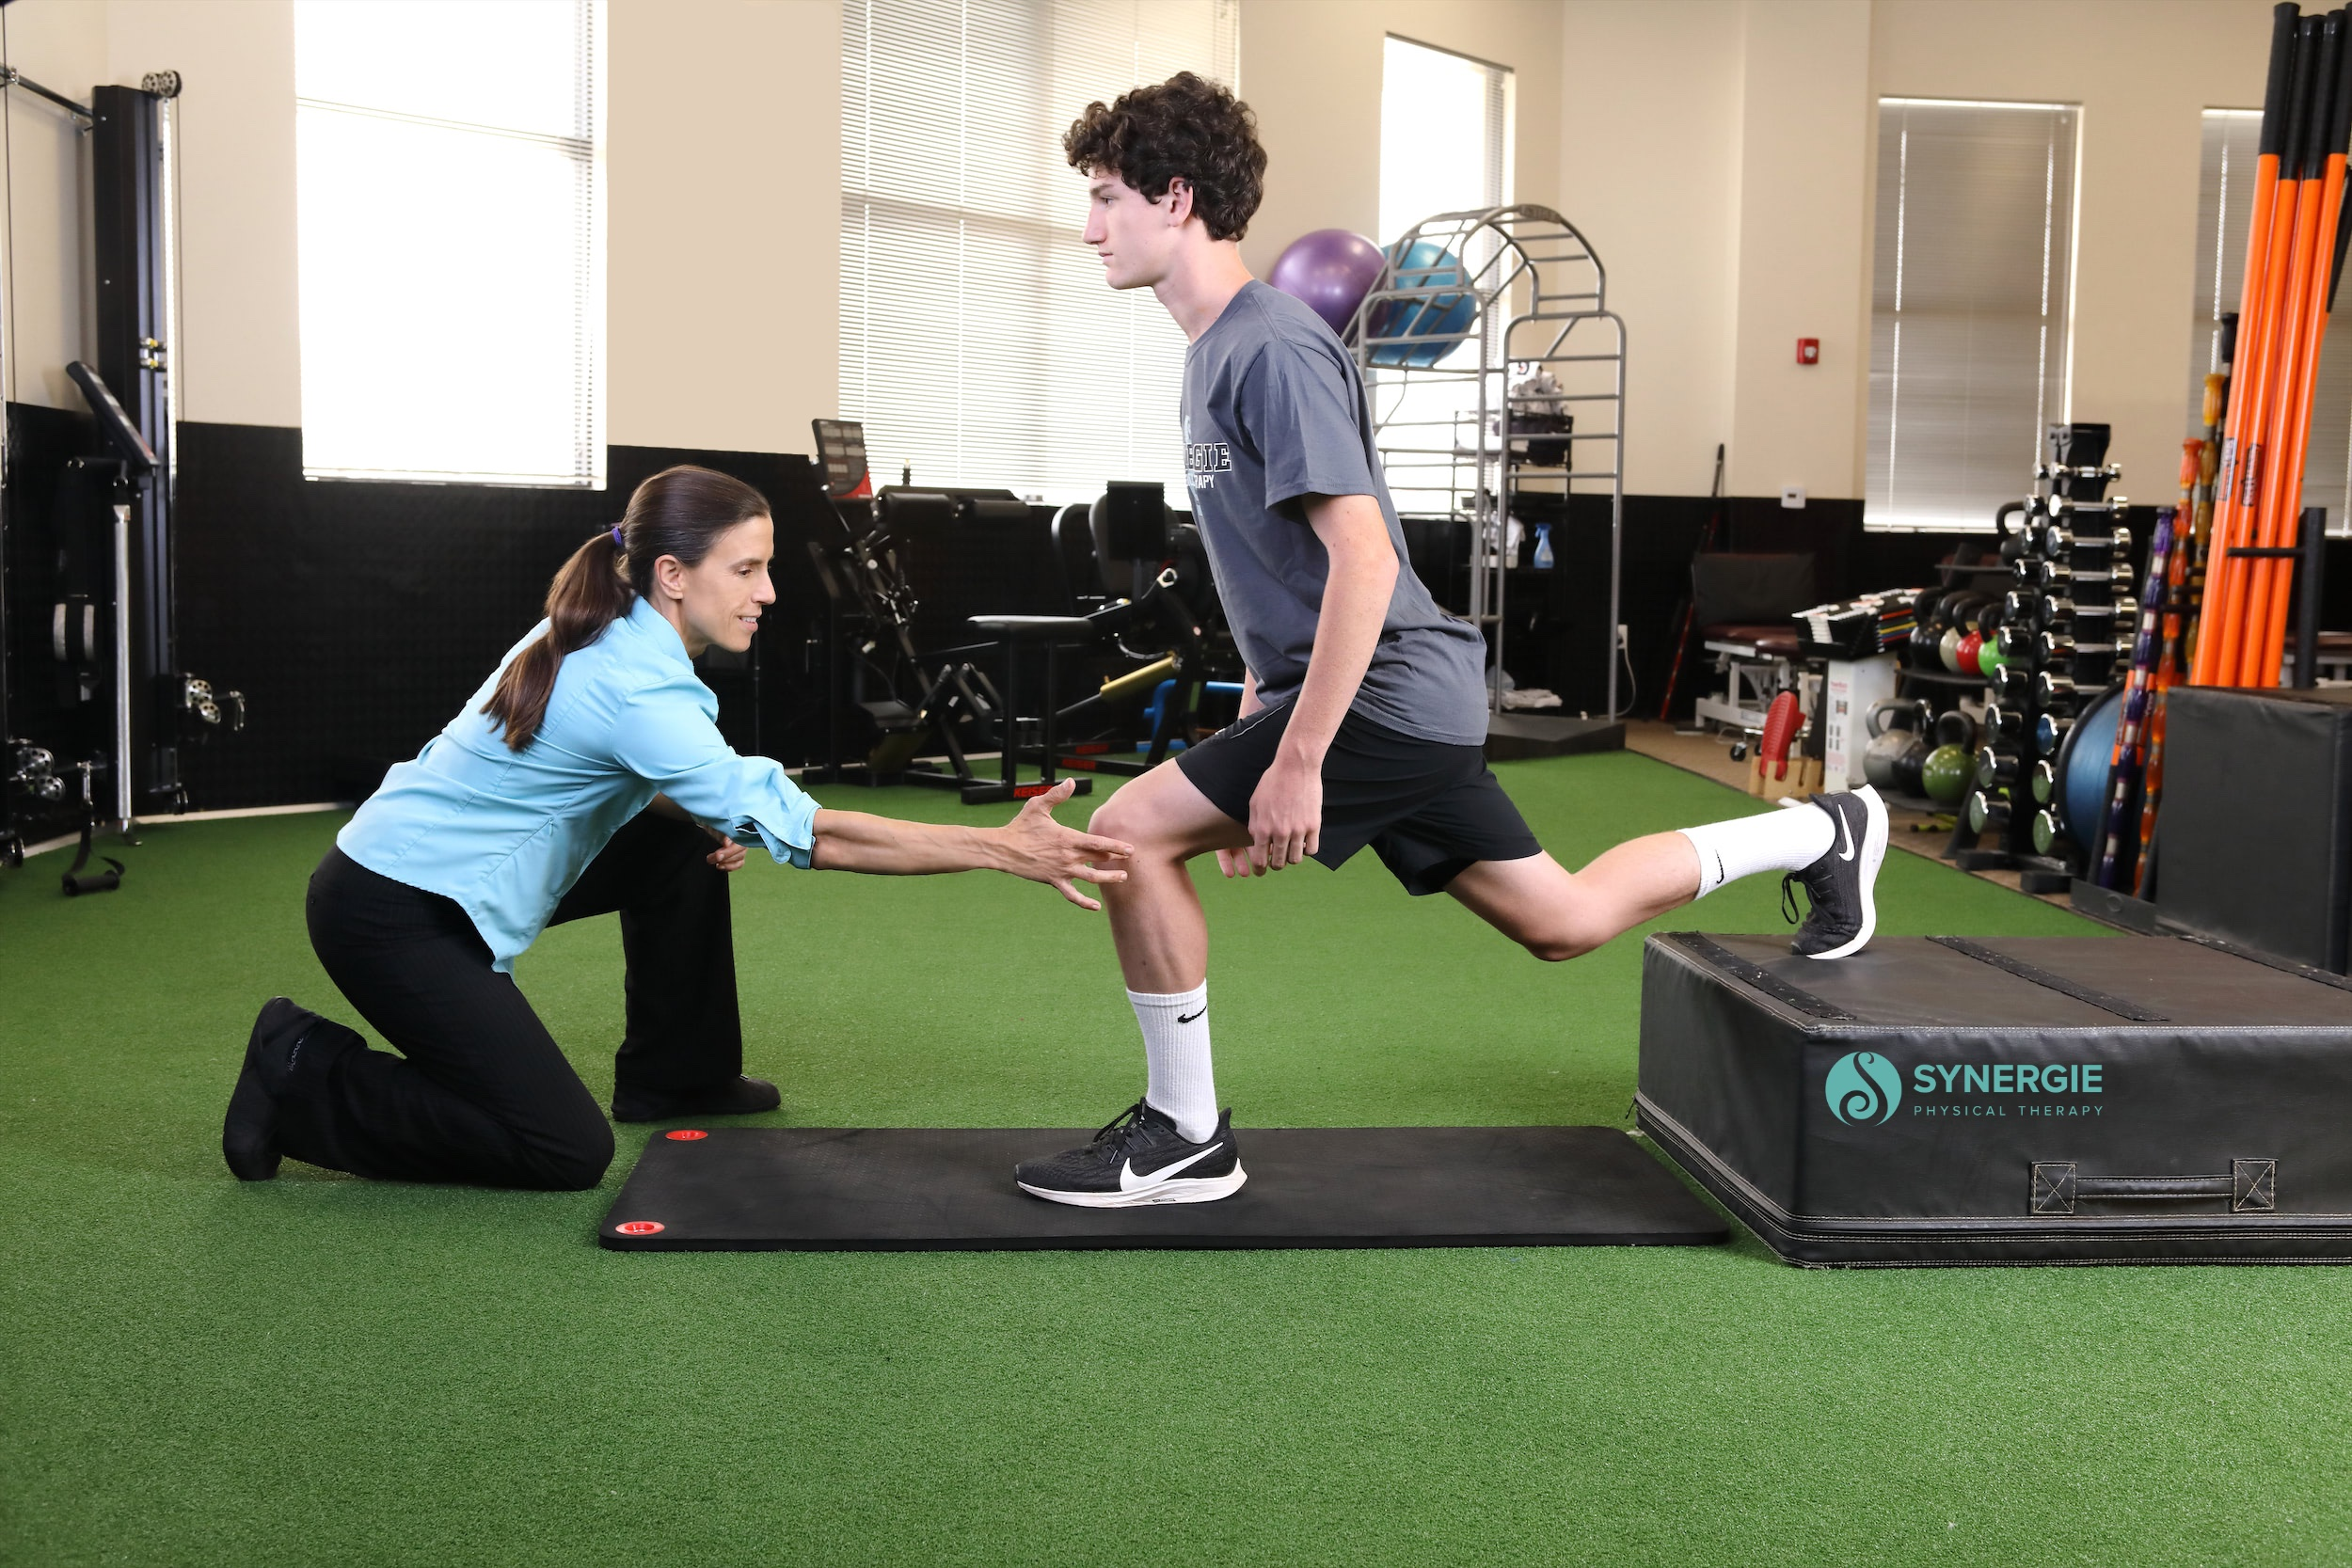 Dr. Julie Guthrie, Director of SynergiePT, working with a runner.